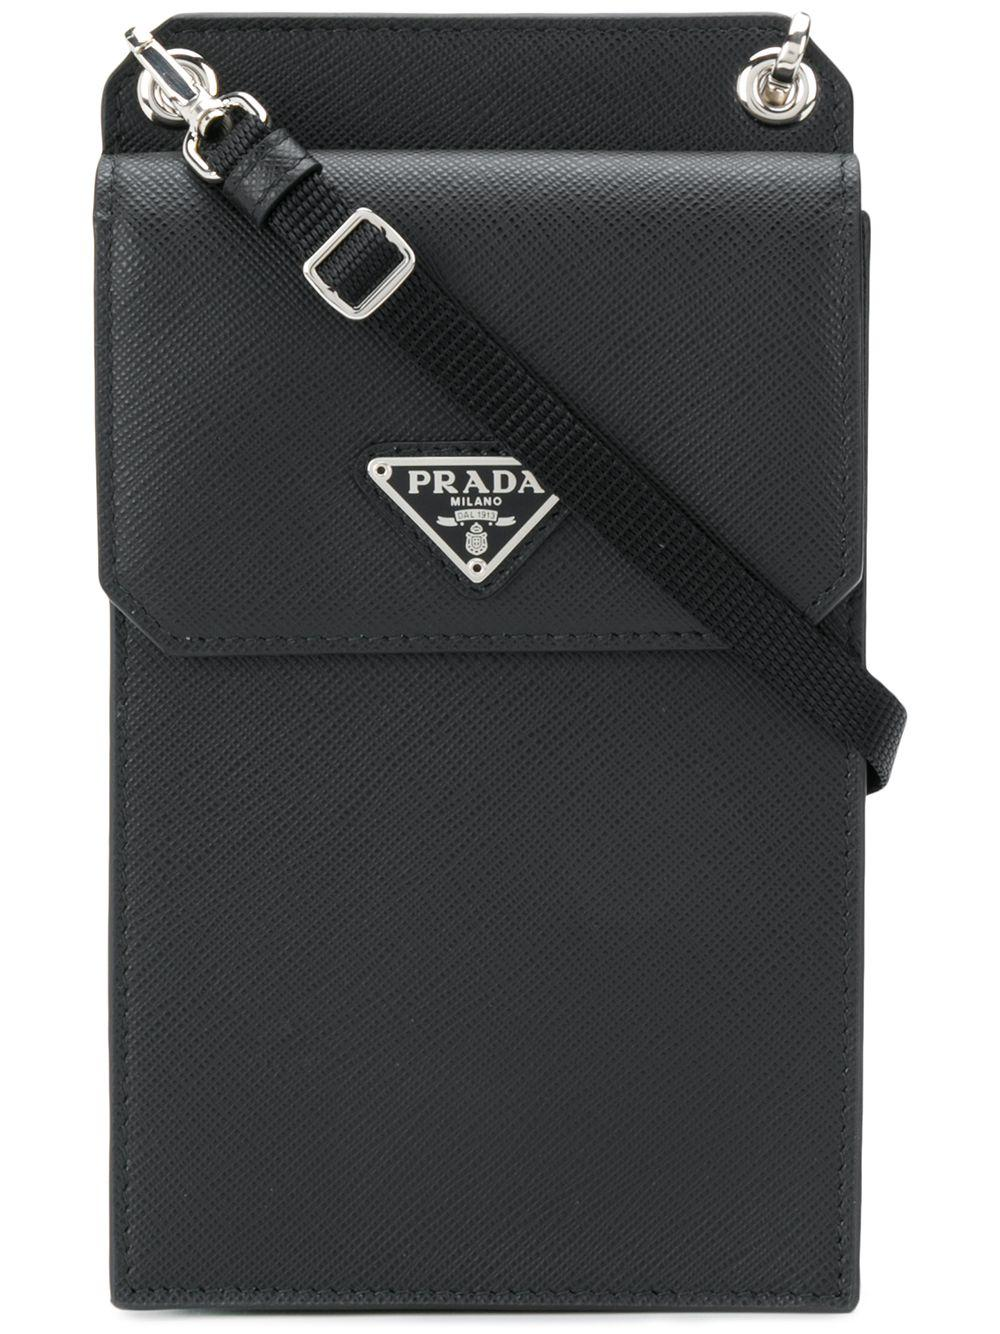 NWT DIESEL Brand  Black Pad Tour for Apple iPad Case Cover Zip Bag